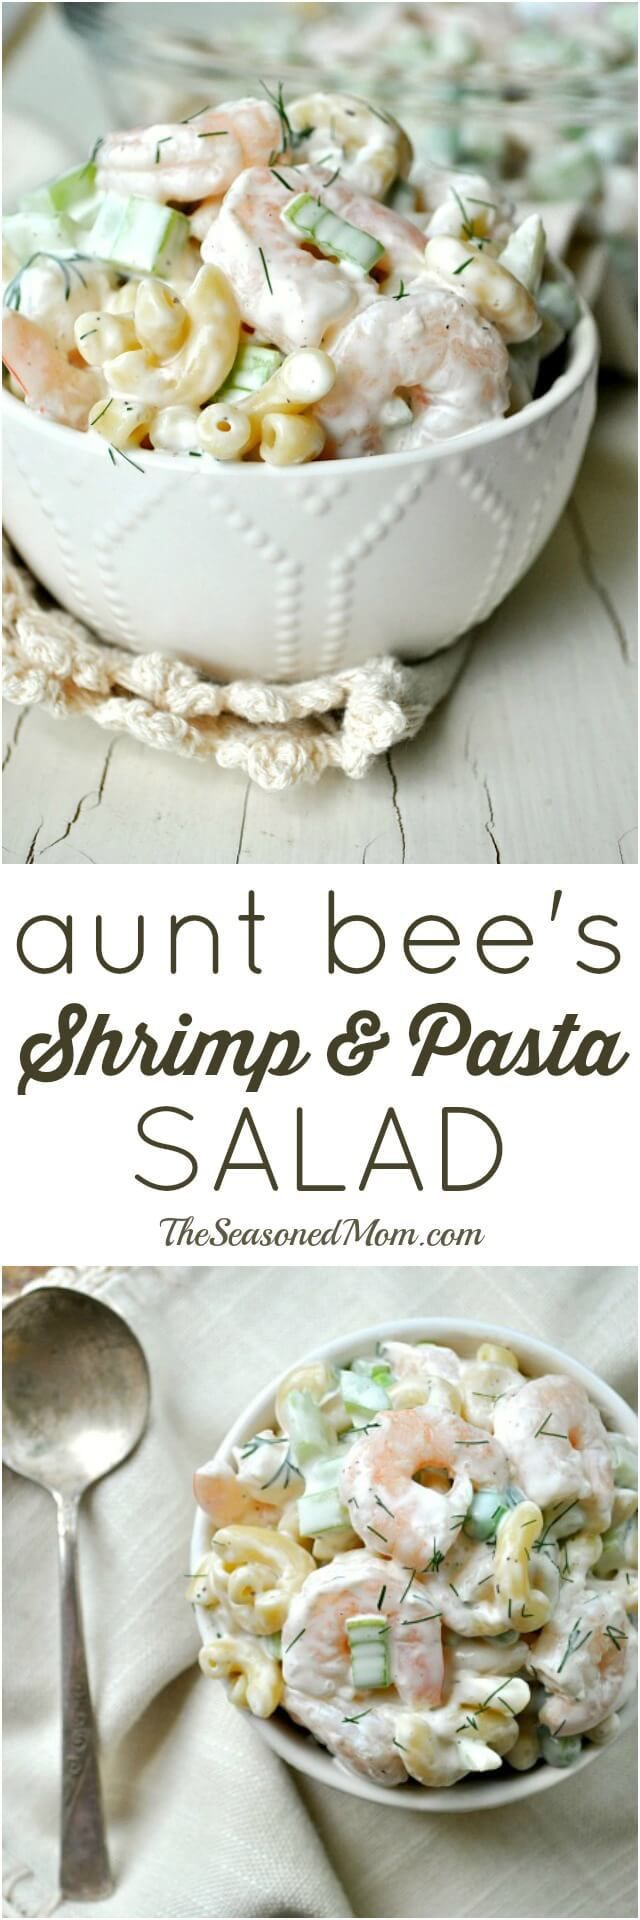 93 best RECIPES THAT I LOVE images on Pinterest | Kitchens, Cooking ...